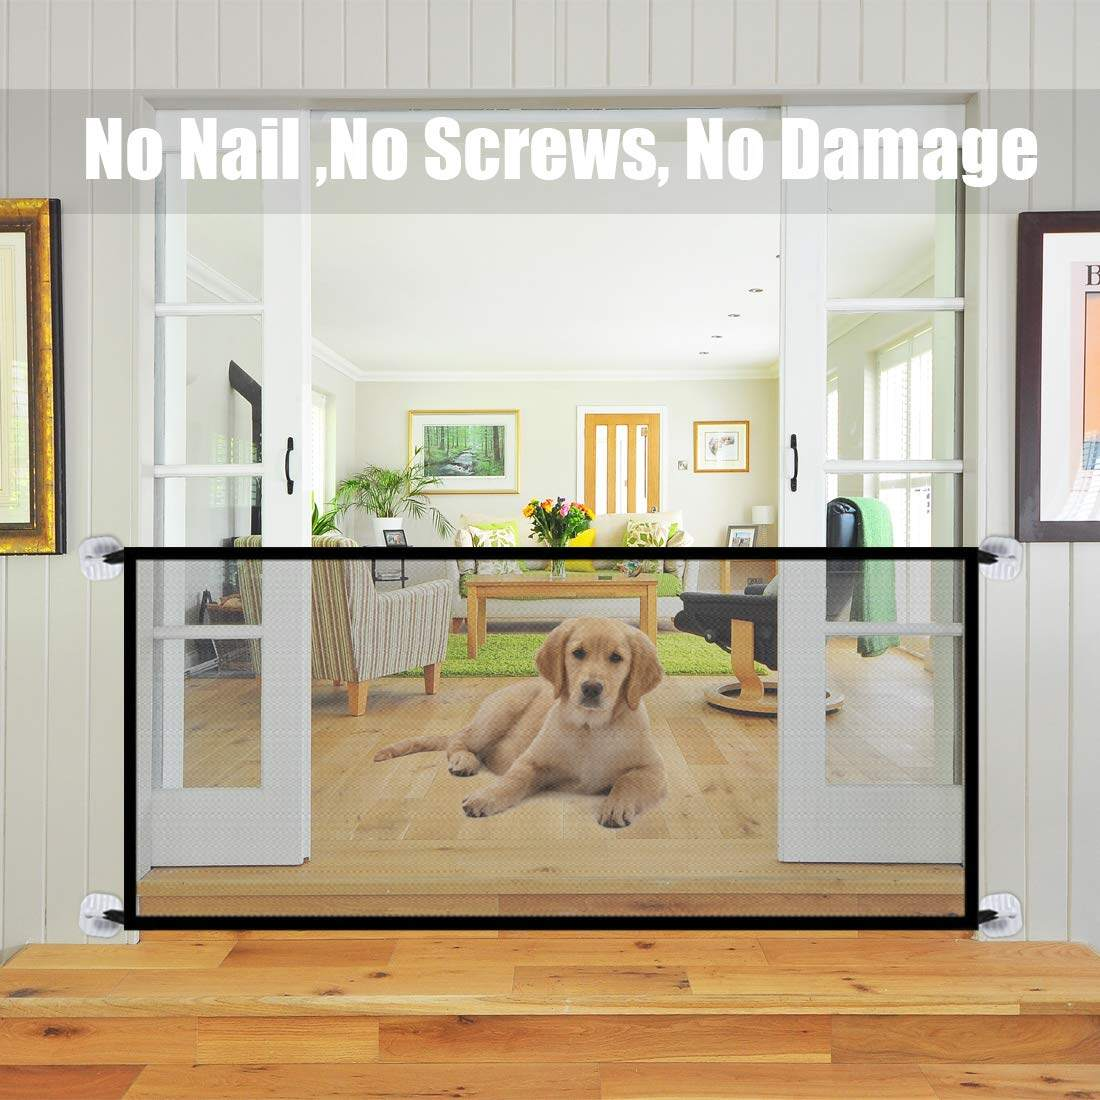 Mesh Pet Gate Magic Gate For Dogs Magic Gate Pet Gate For Dogs Doors Pet Barrier Baby Safety Fence Portable Dog Safe Guard Enclosure For House Indoor Stair Doorway - Konki - SHP